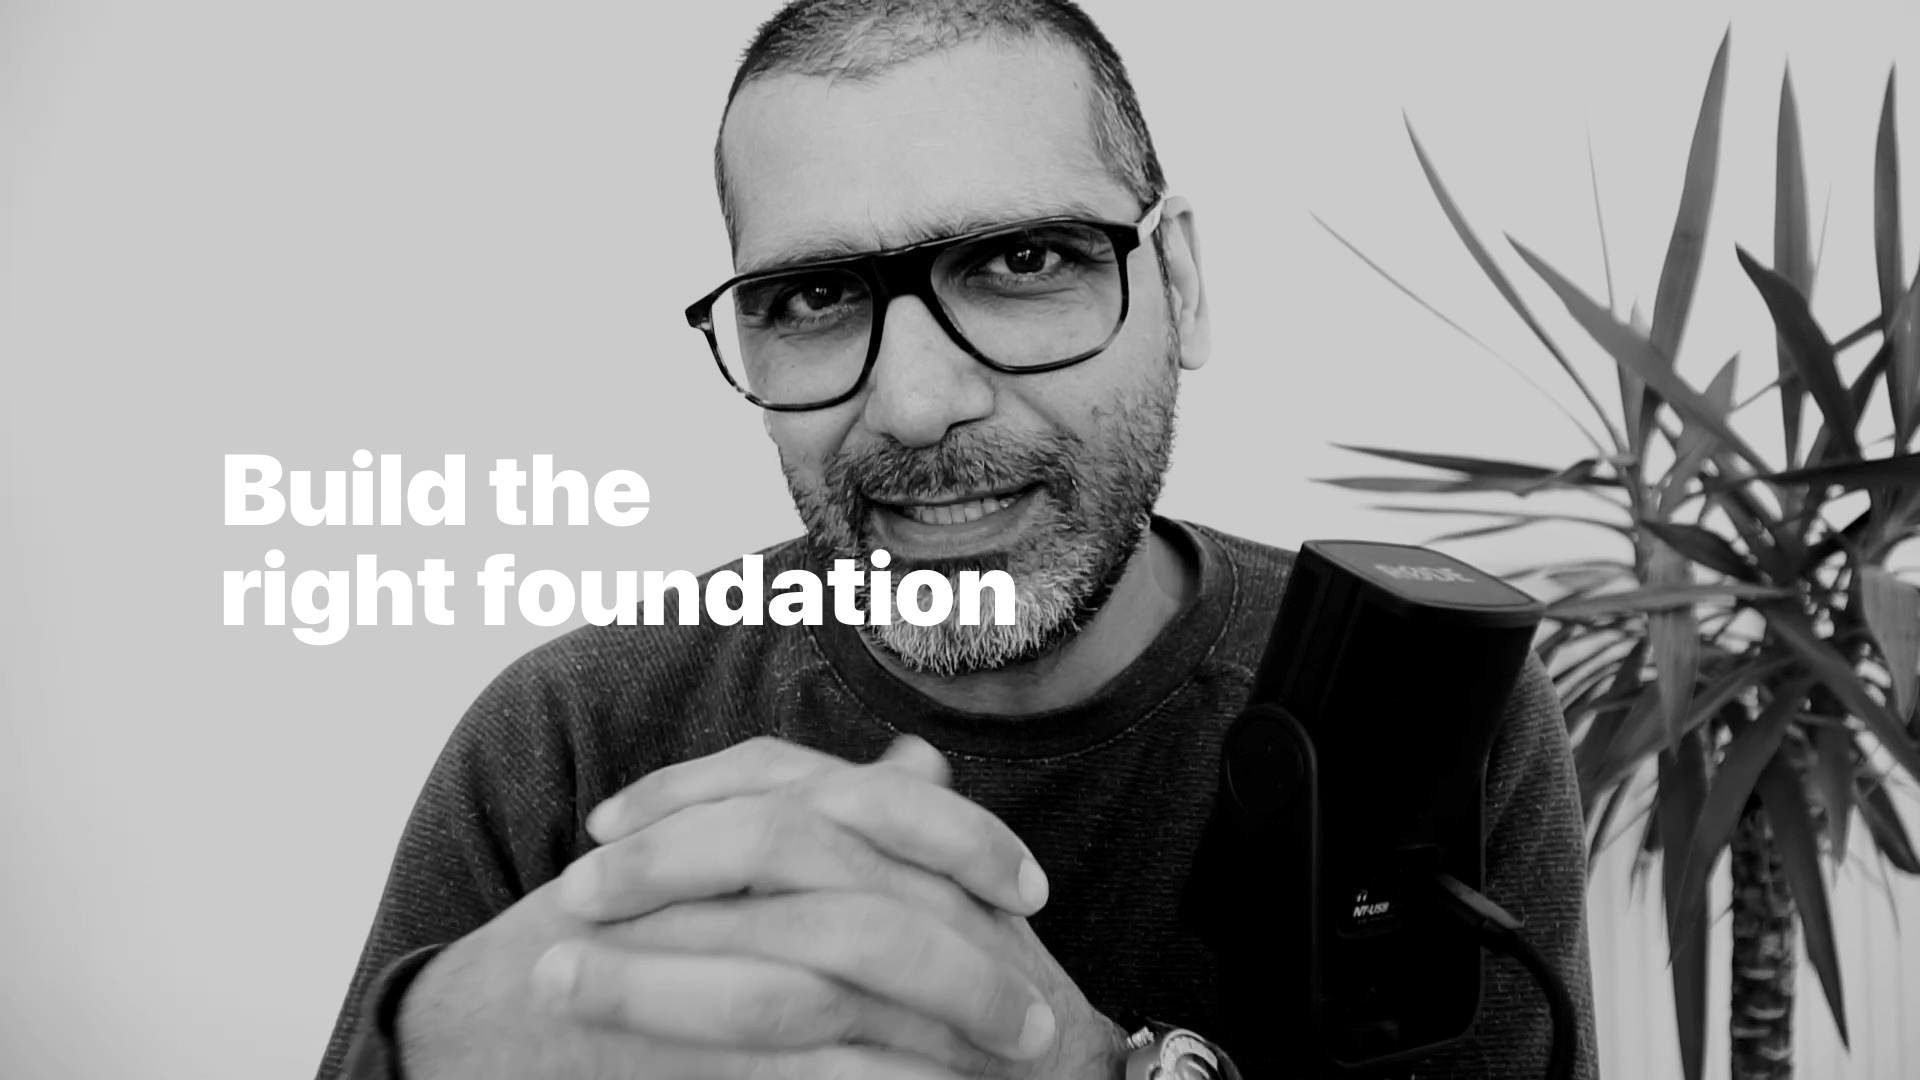 Build the right foundation